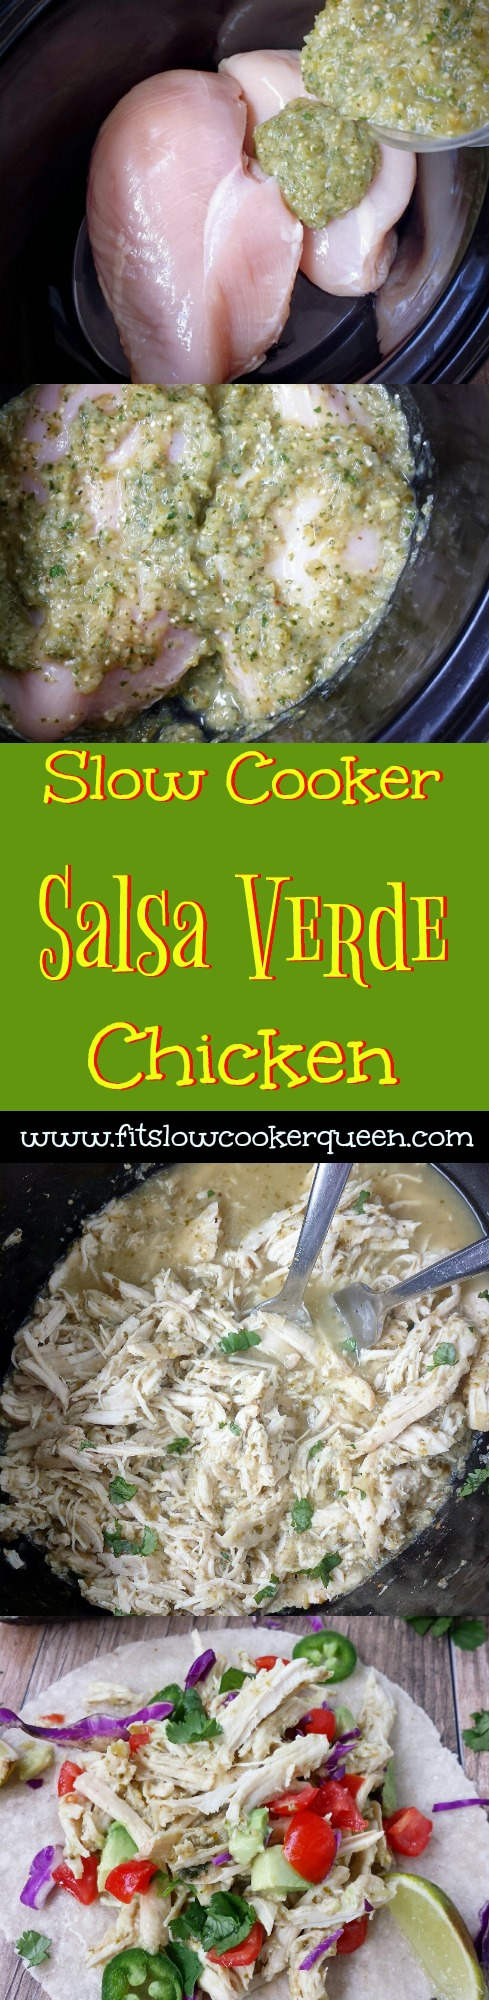 slow cooker salsa verde chicken pin